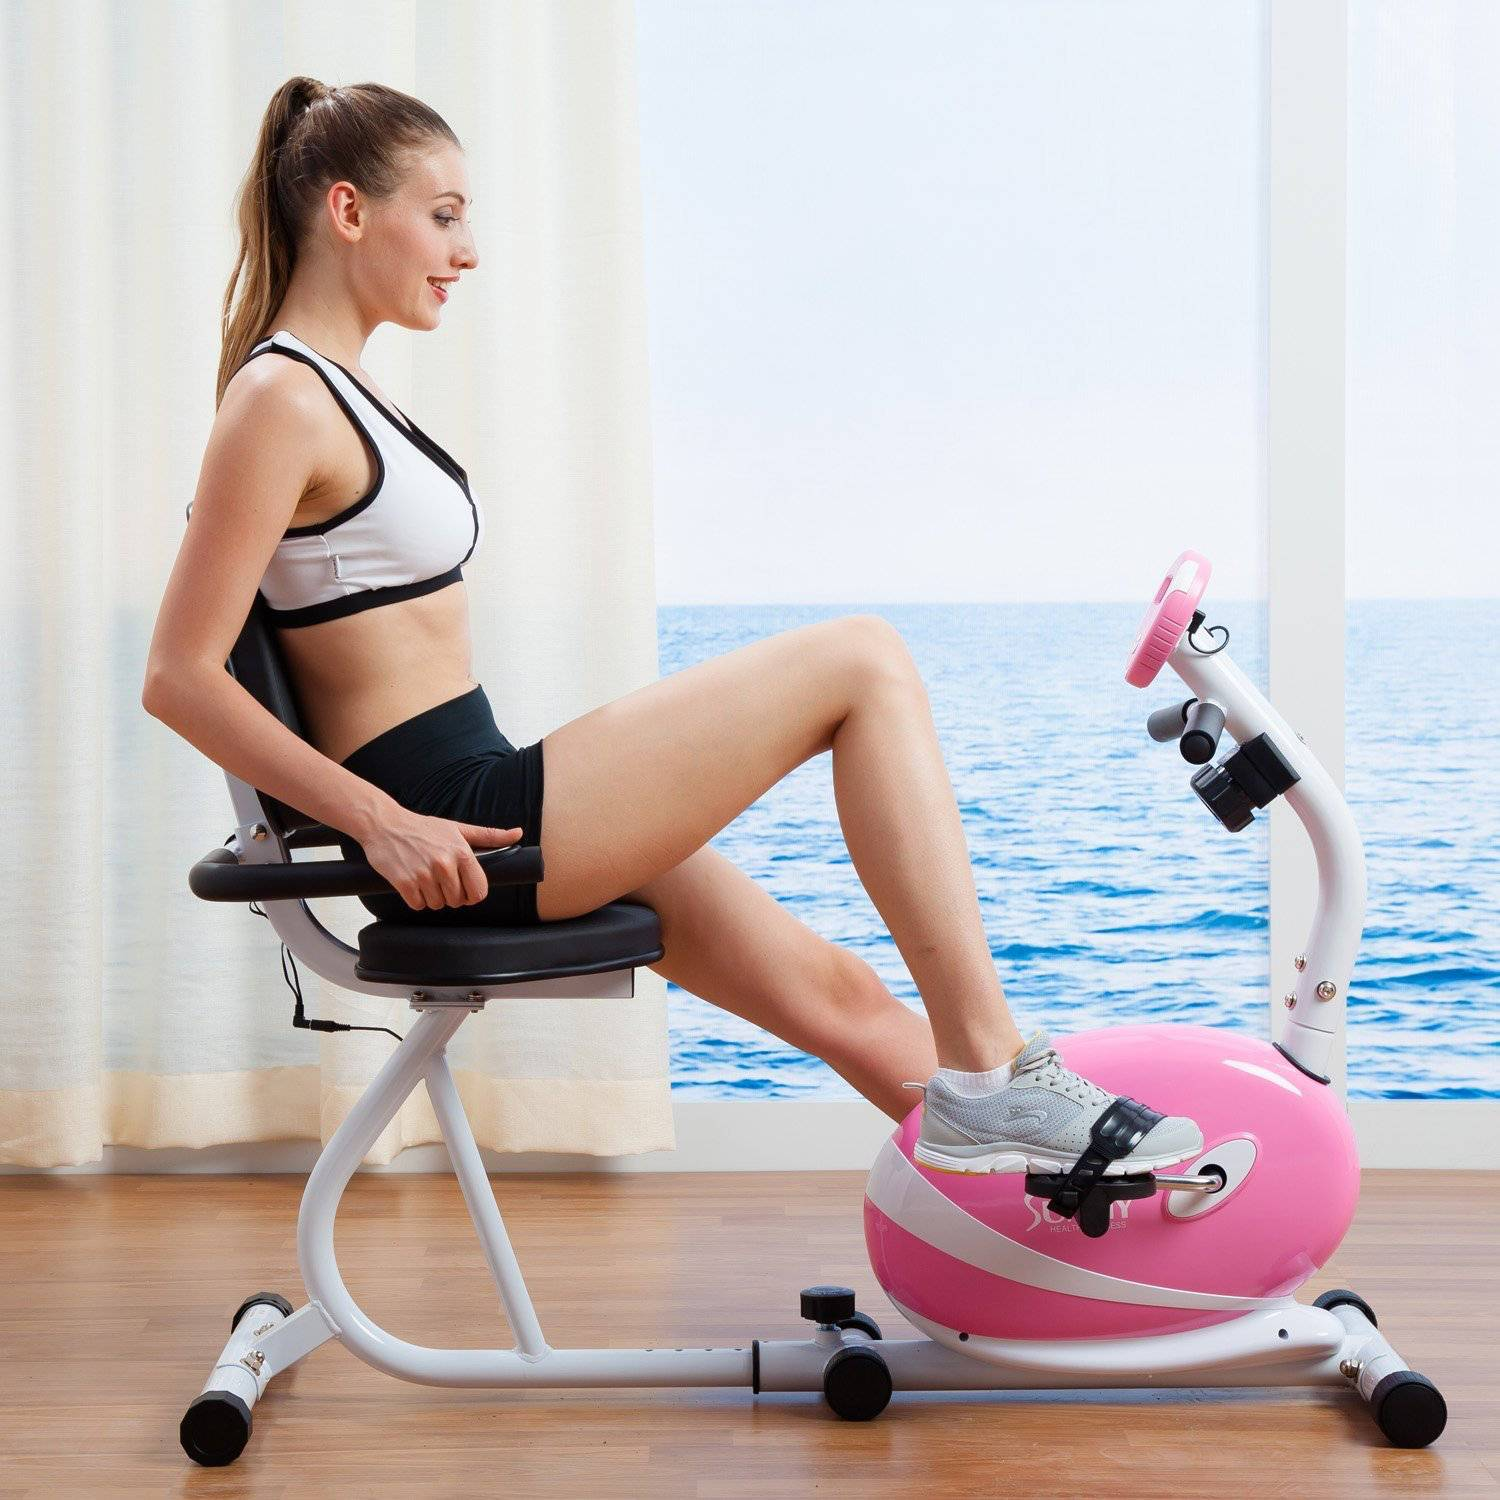 5 Different Types Of Exercise Bikes To Meet Your Fitness Goals 2017